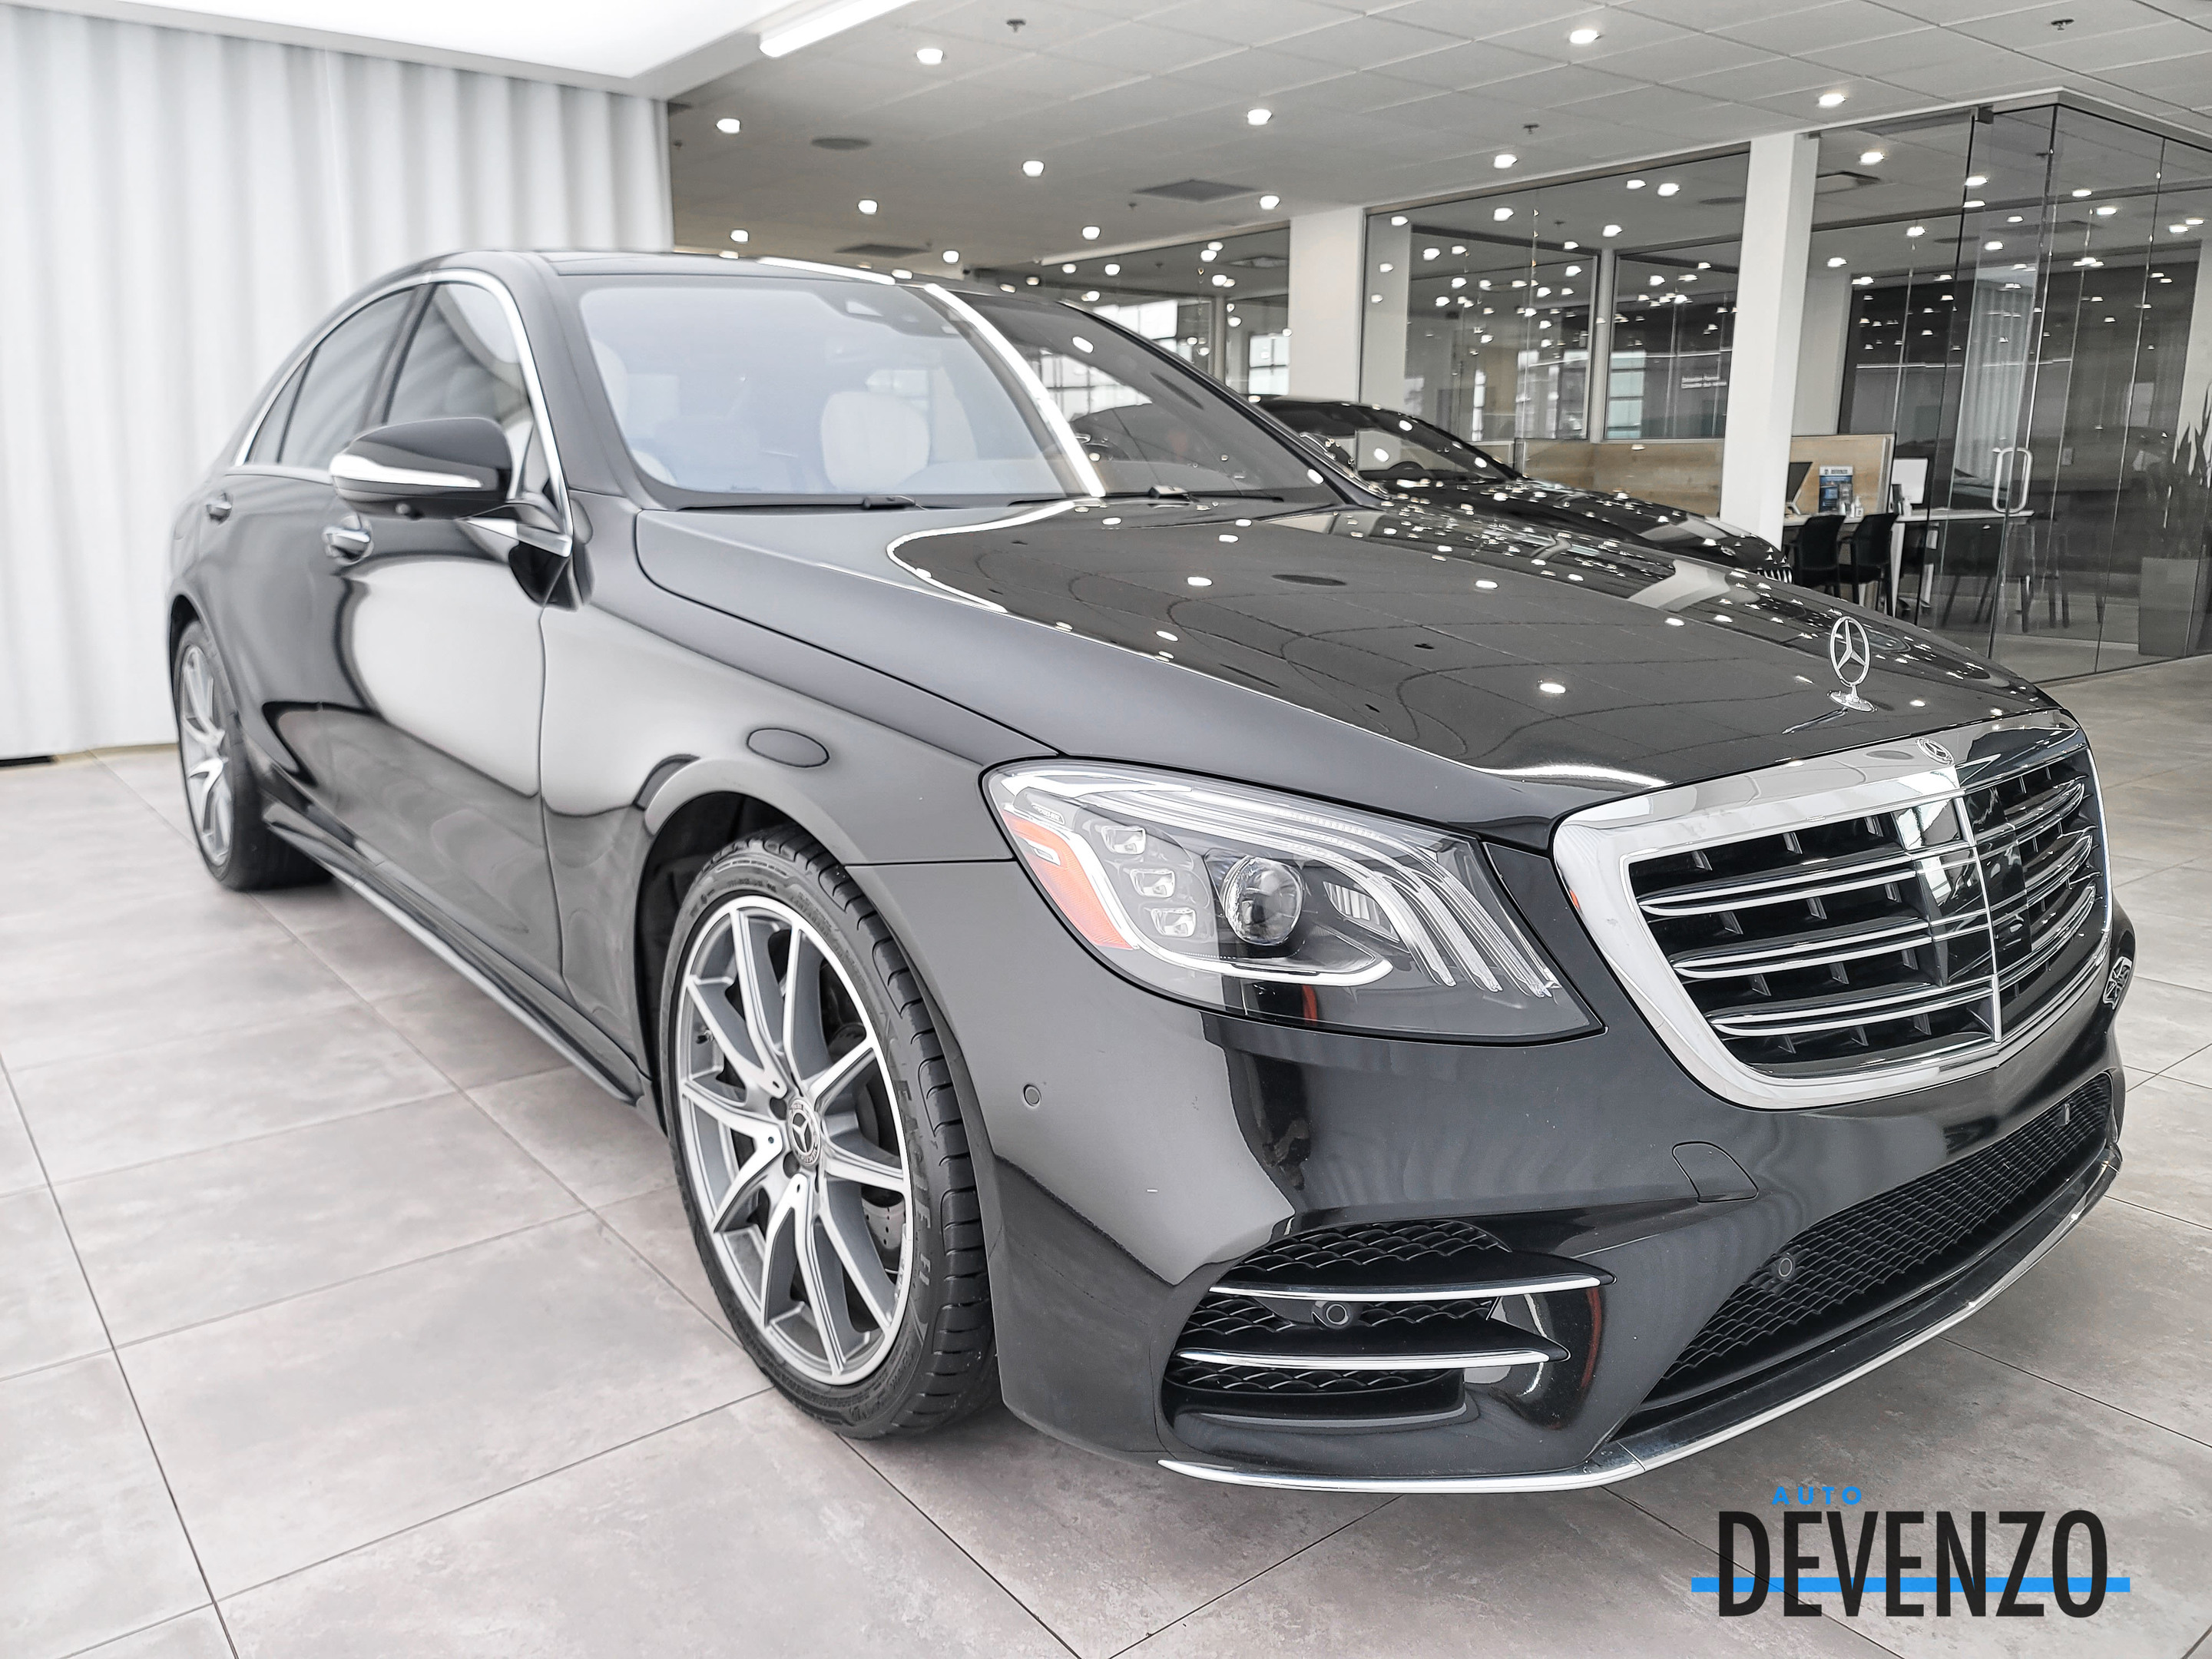 2018 Mercedes-Benz S-Class S450 4MATIC Intelligent Drive / AMG Sport Package complet